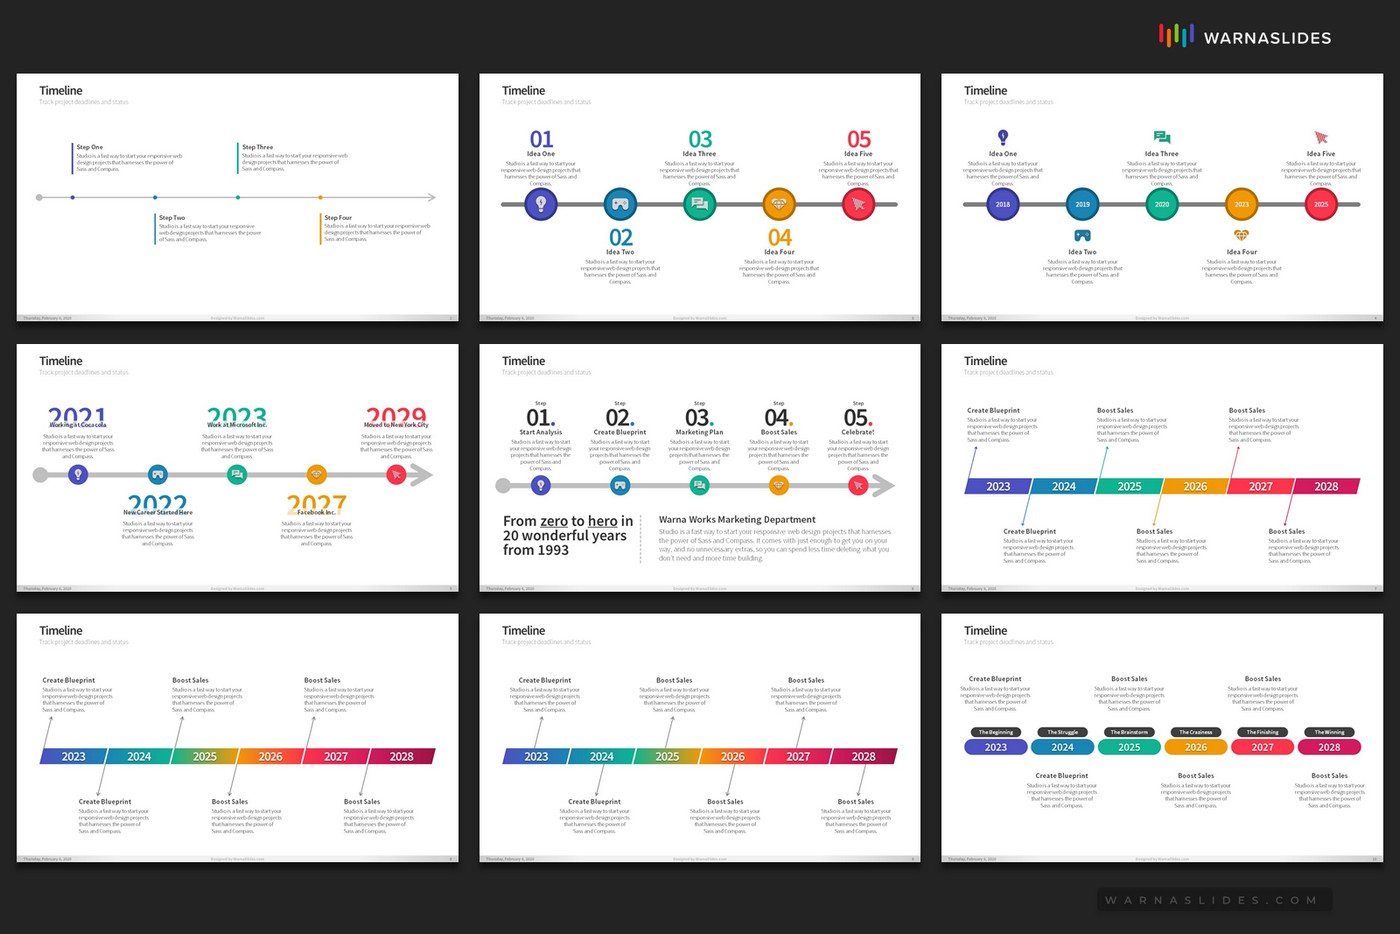 Project-Timeline-History-PowerPoint-Template-for-Business-Pitch-Deck-Professional-Creative-PowerPoint-Icons-006